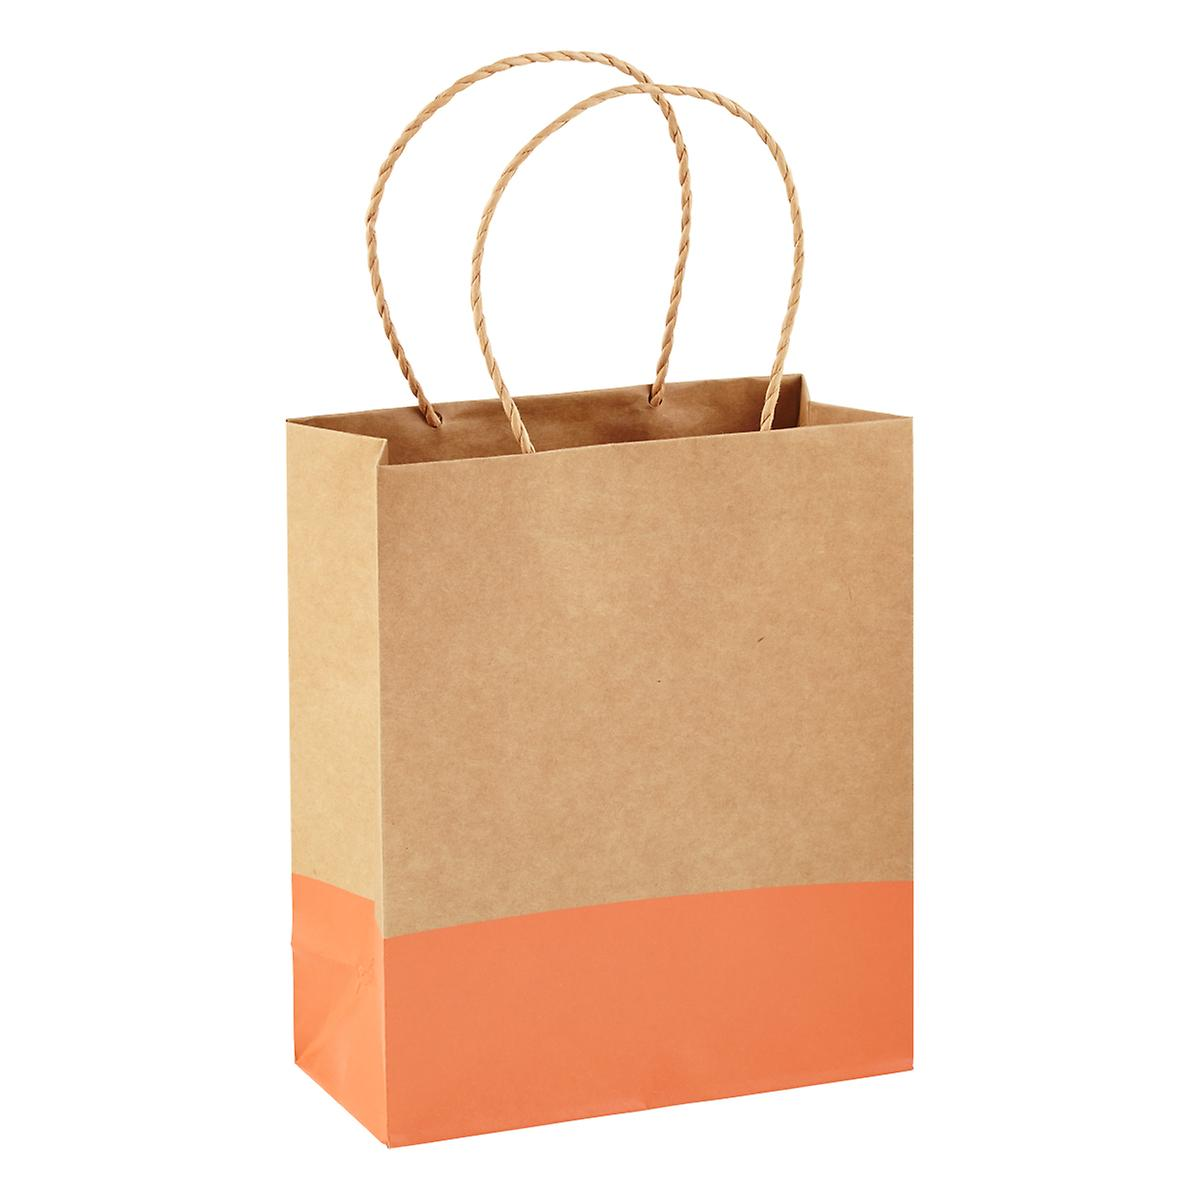 Medium Sunkissed Kraft Gift Tote